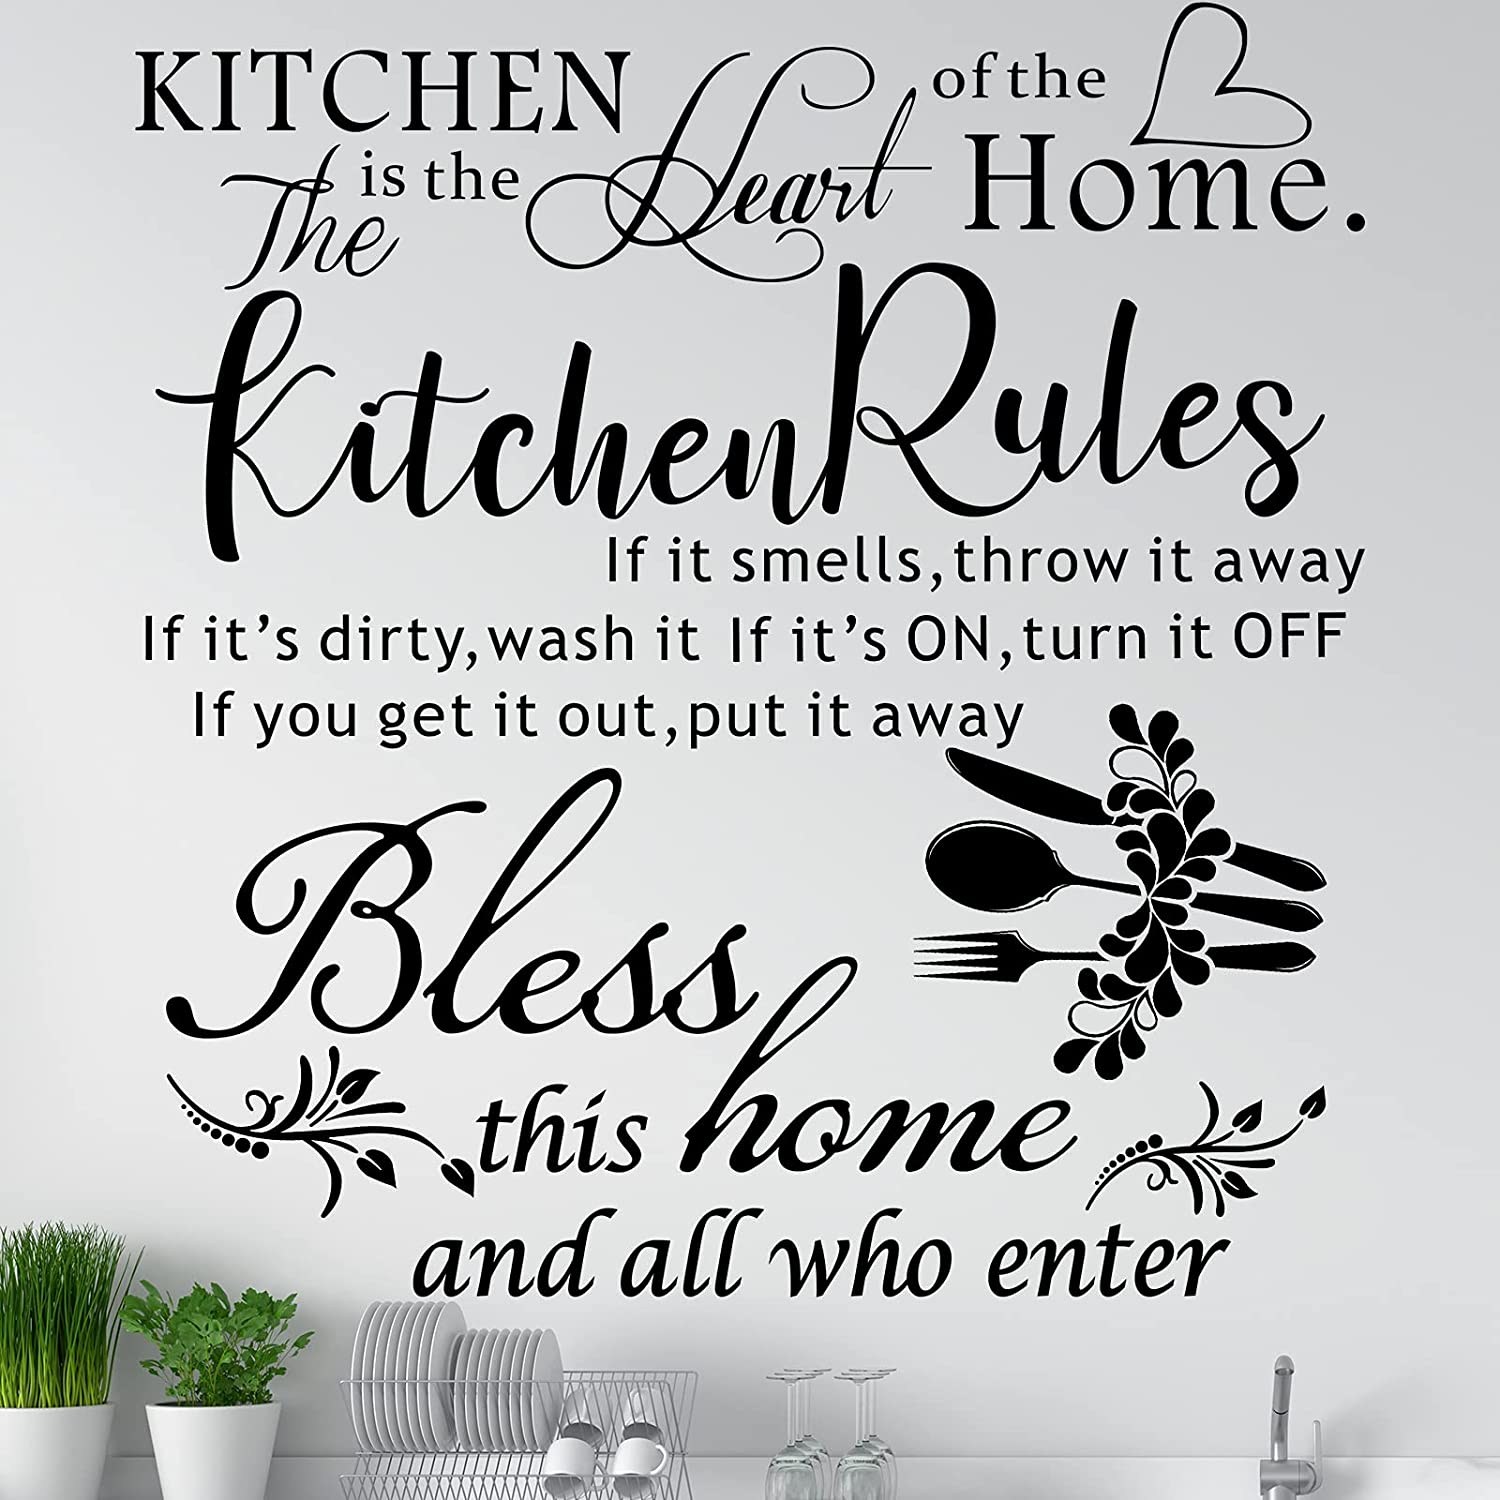 3 Pieces Kitchen Rules Wall Decals Art Mural Home Decor Sticker Vinyl Wall Quotes Saying Home Decor Wall Sticker Bless The Food Before Us Positive Kitchen Wall Decal for Dining Room Family, Black